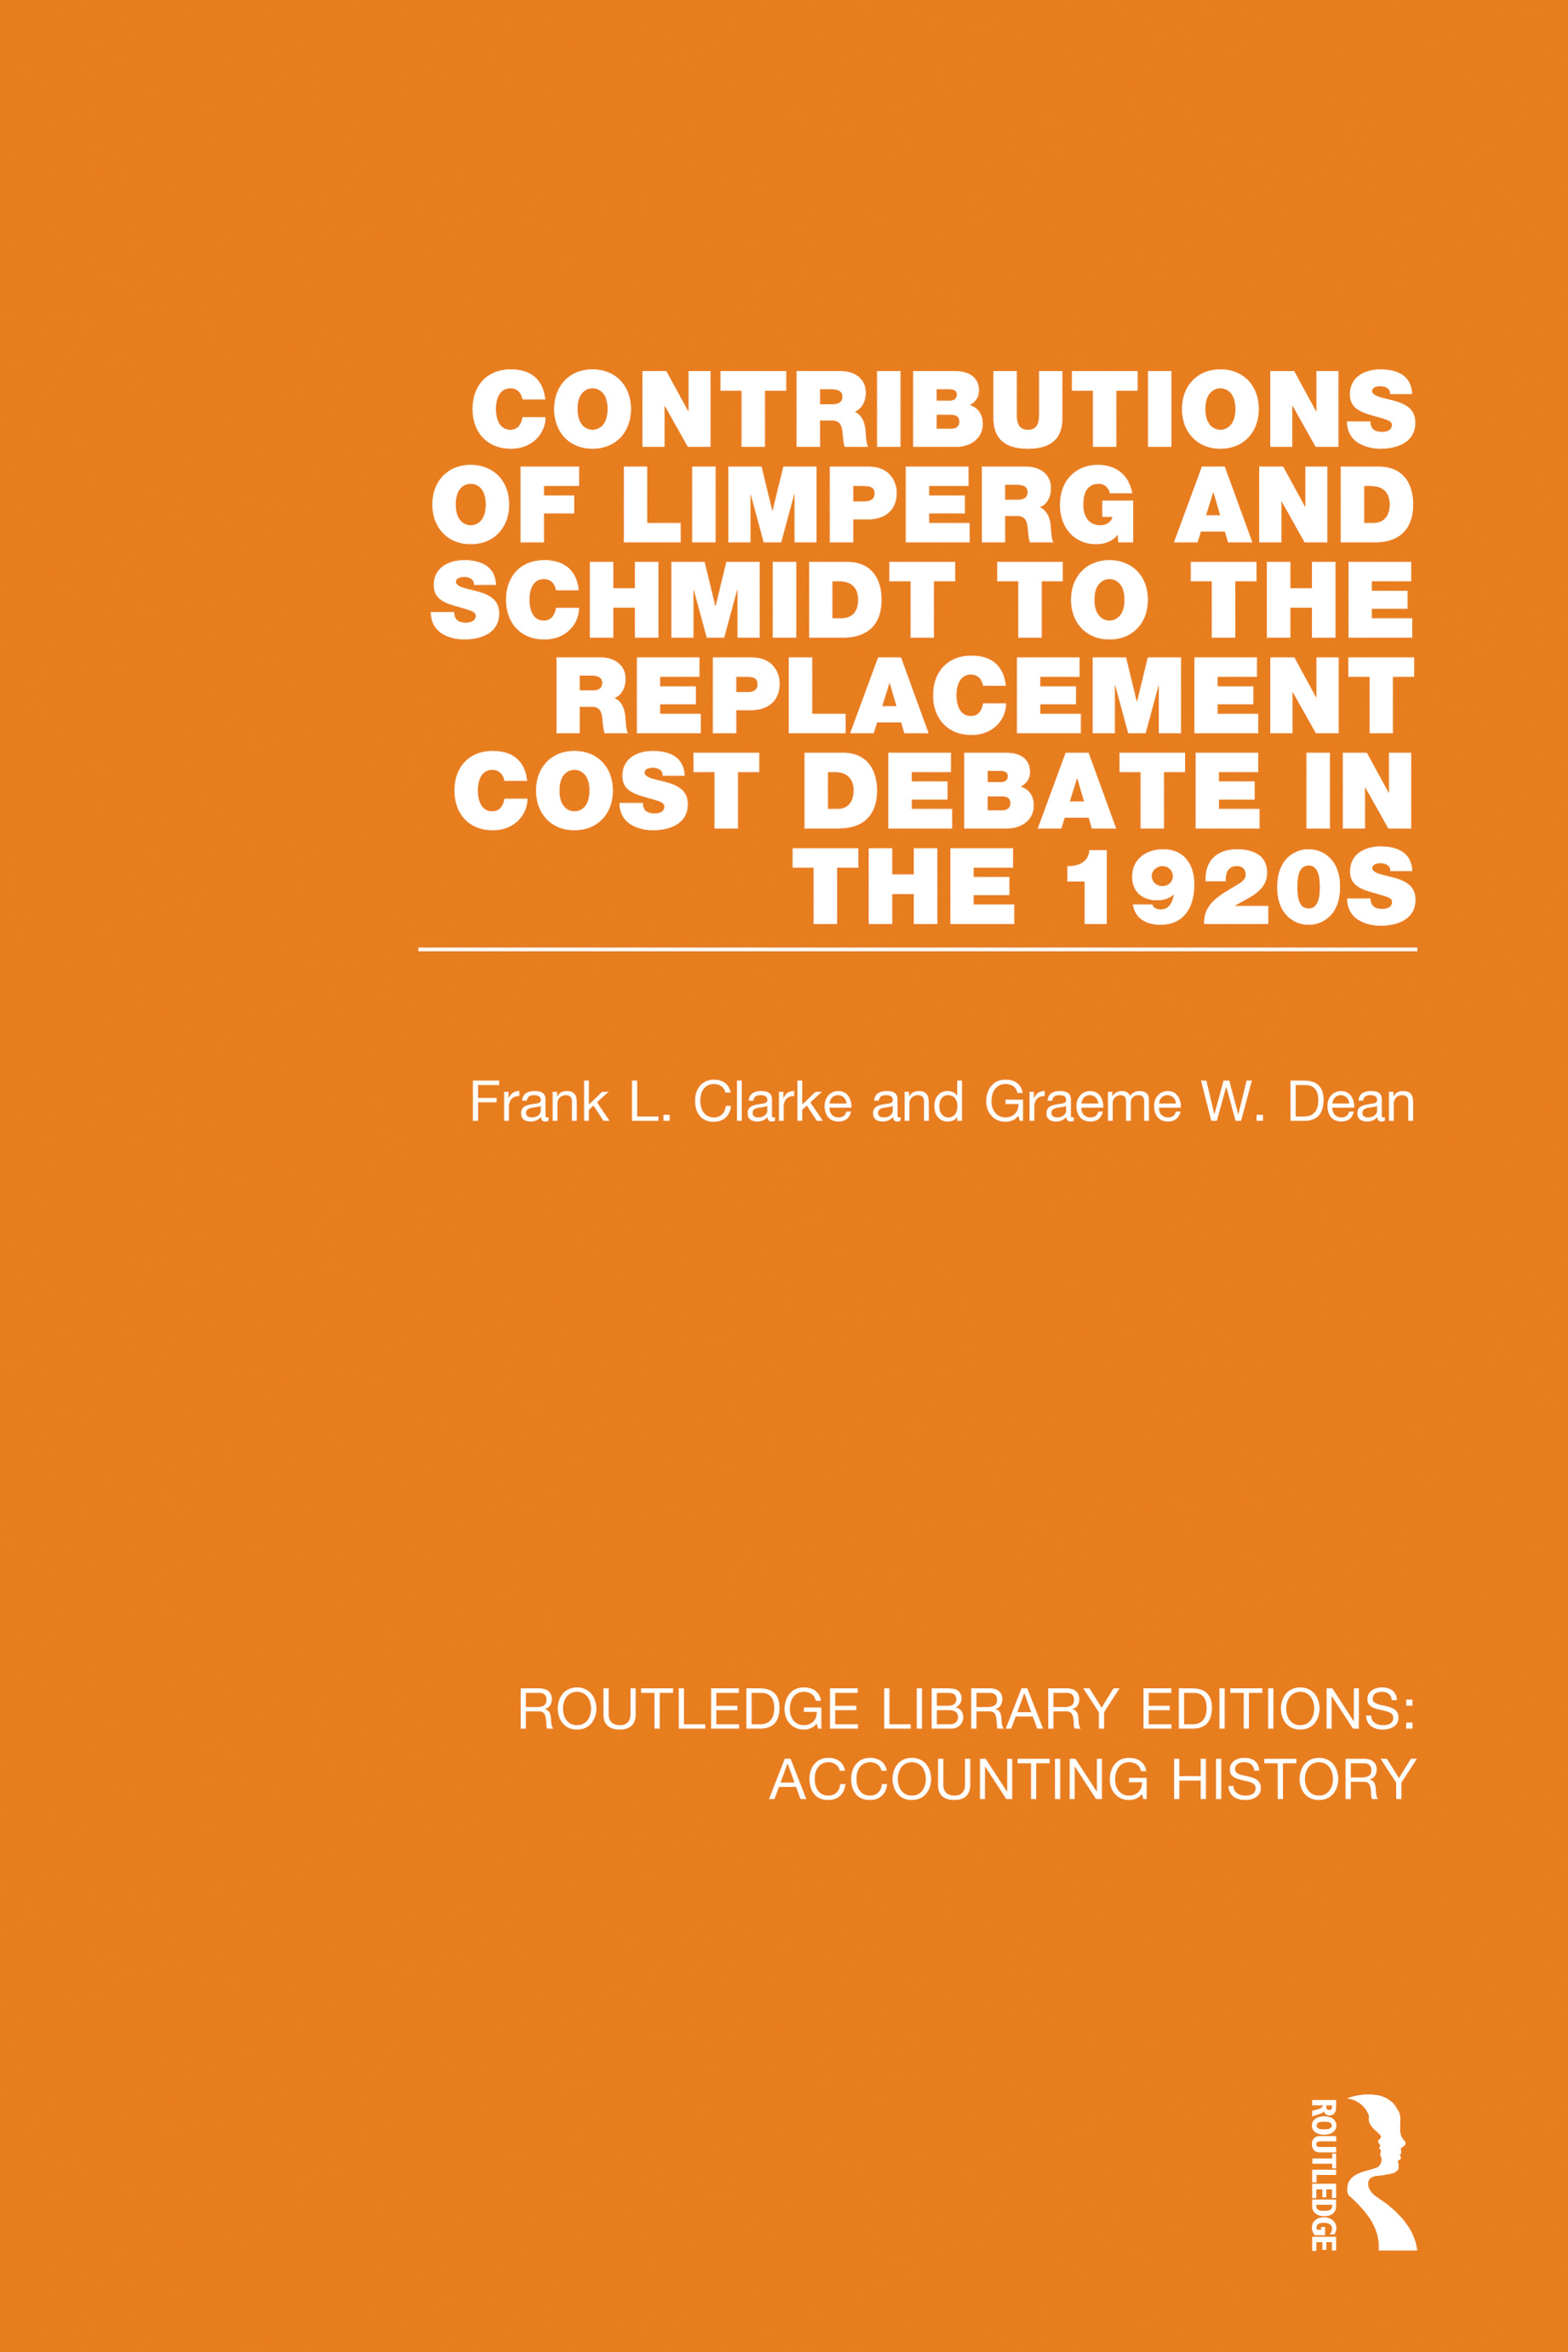 Contributions of Limperg and Schmidt to the Replacement Cost Debate in the 1920s